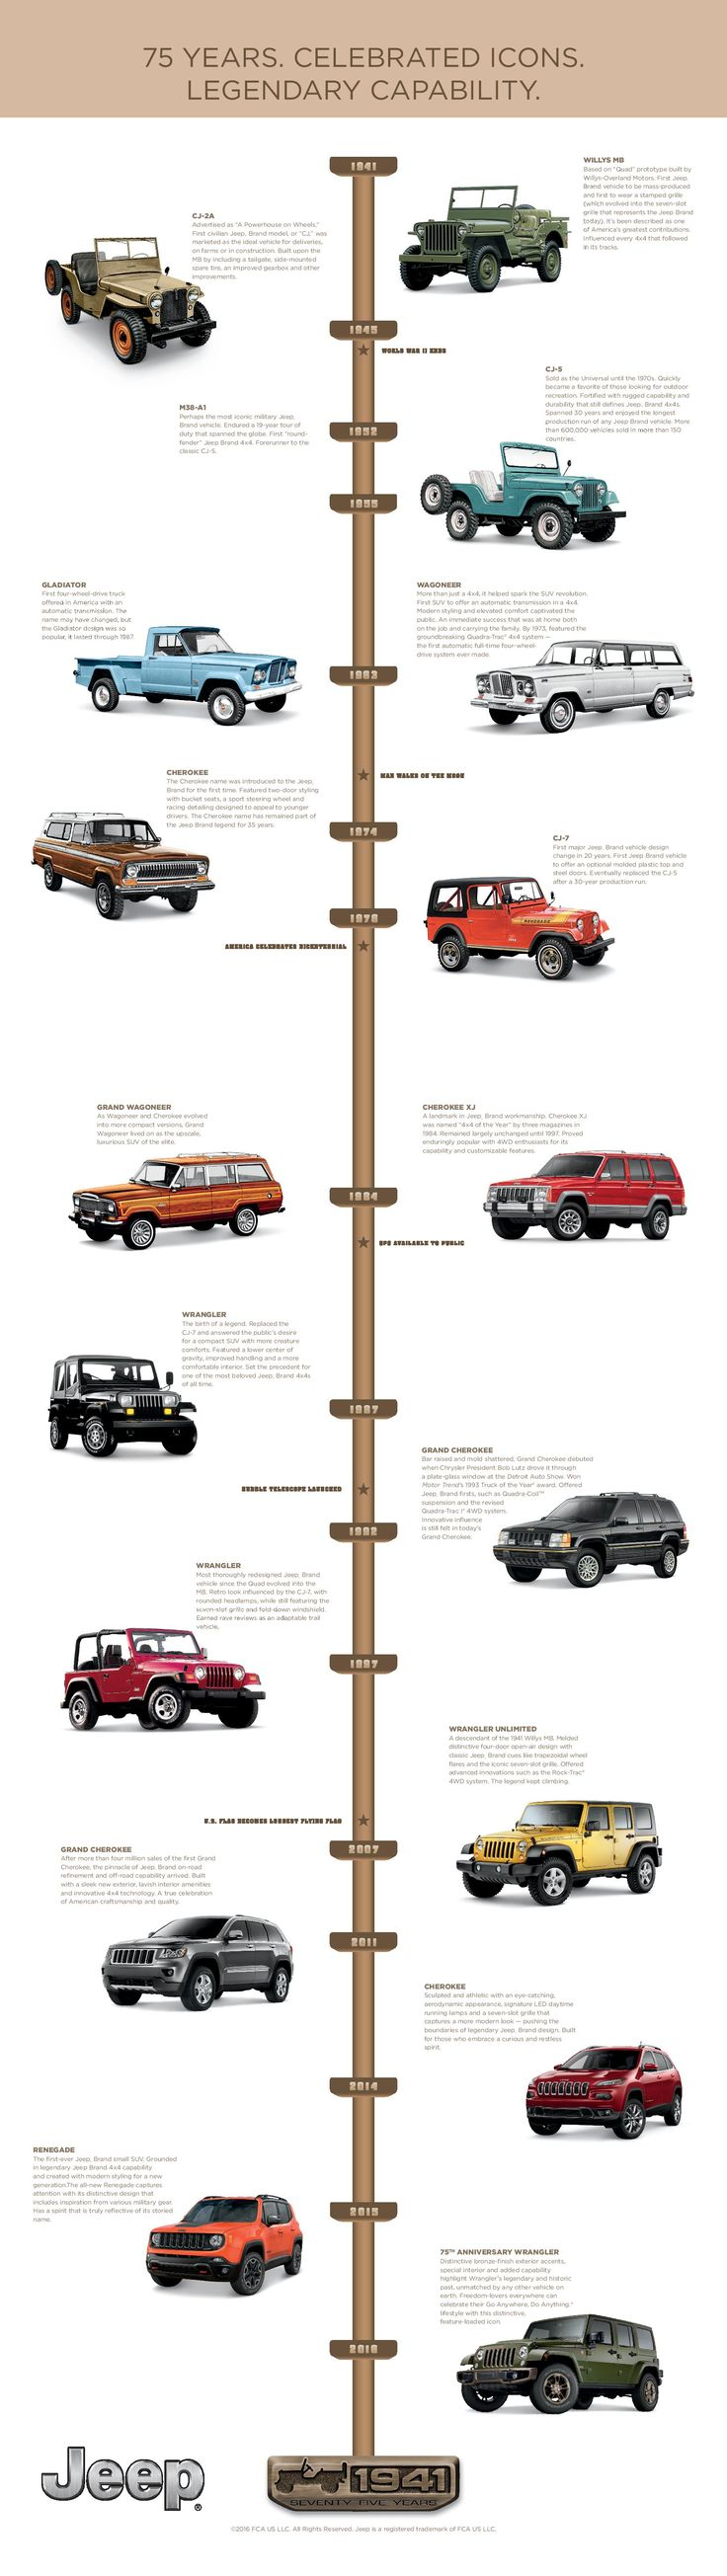 Jeep 75th Anniversary Timeline